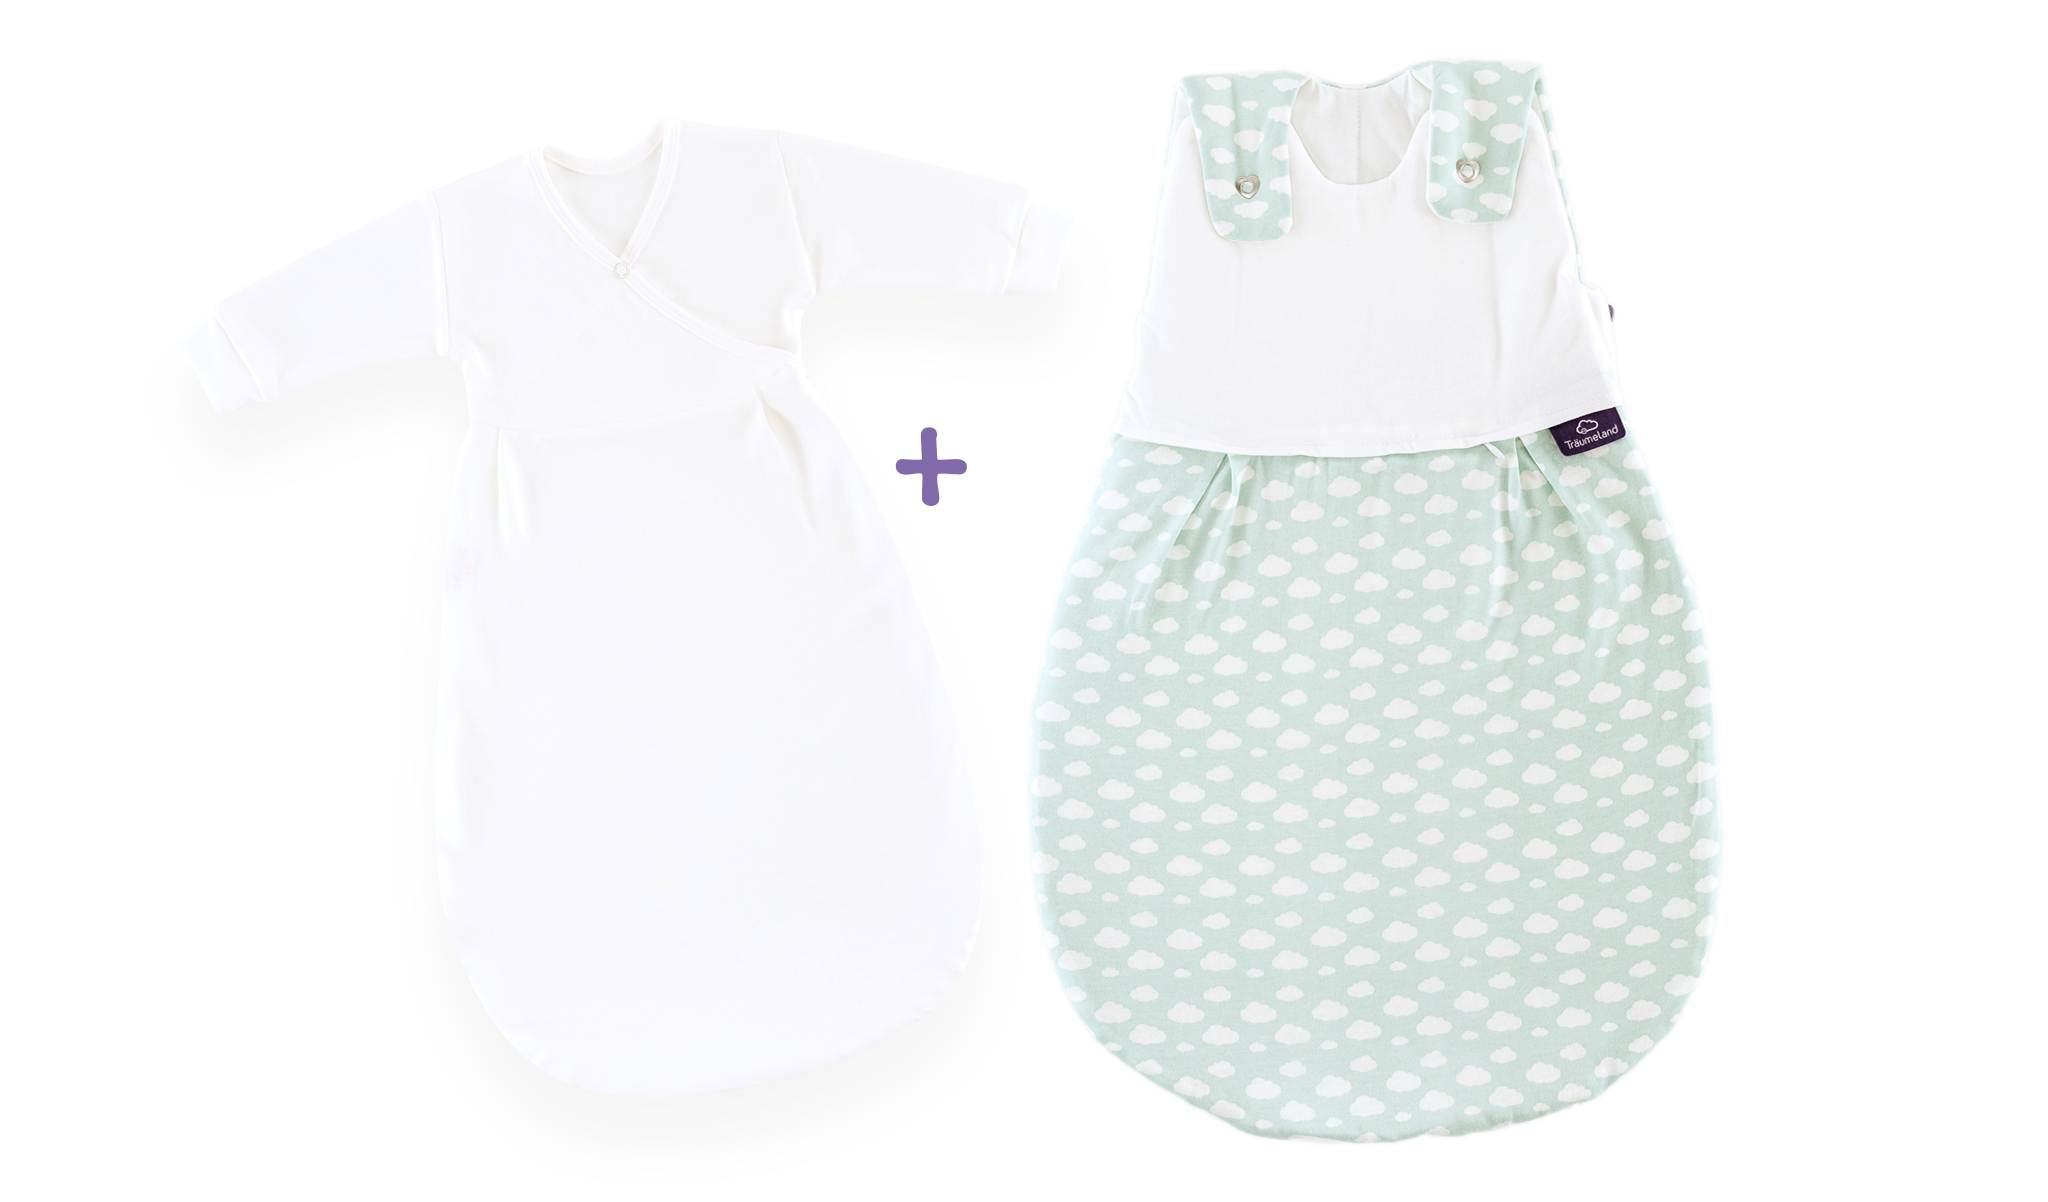 S0100651 - Cloud sleeping bag set in mint